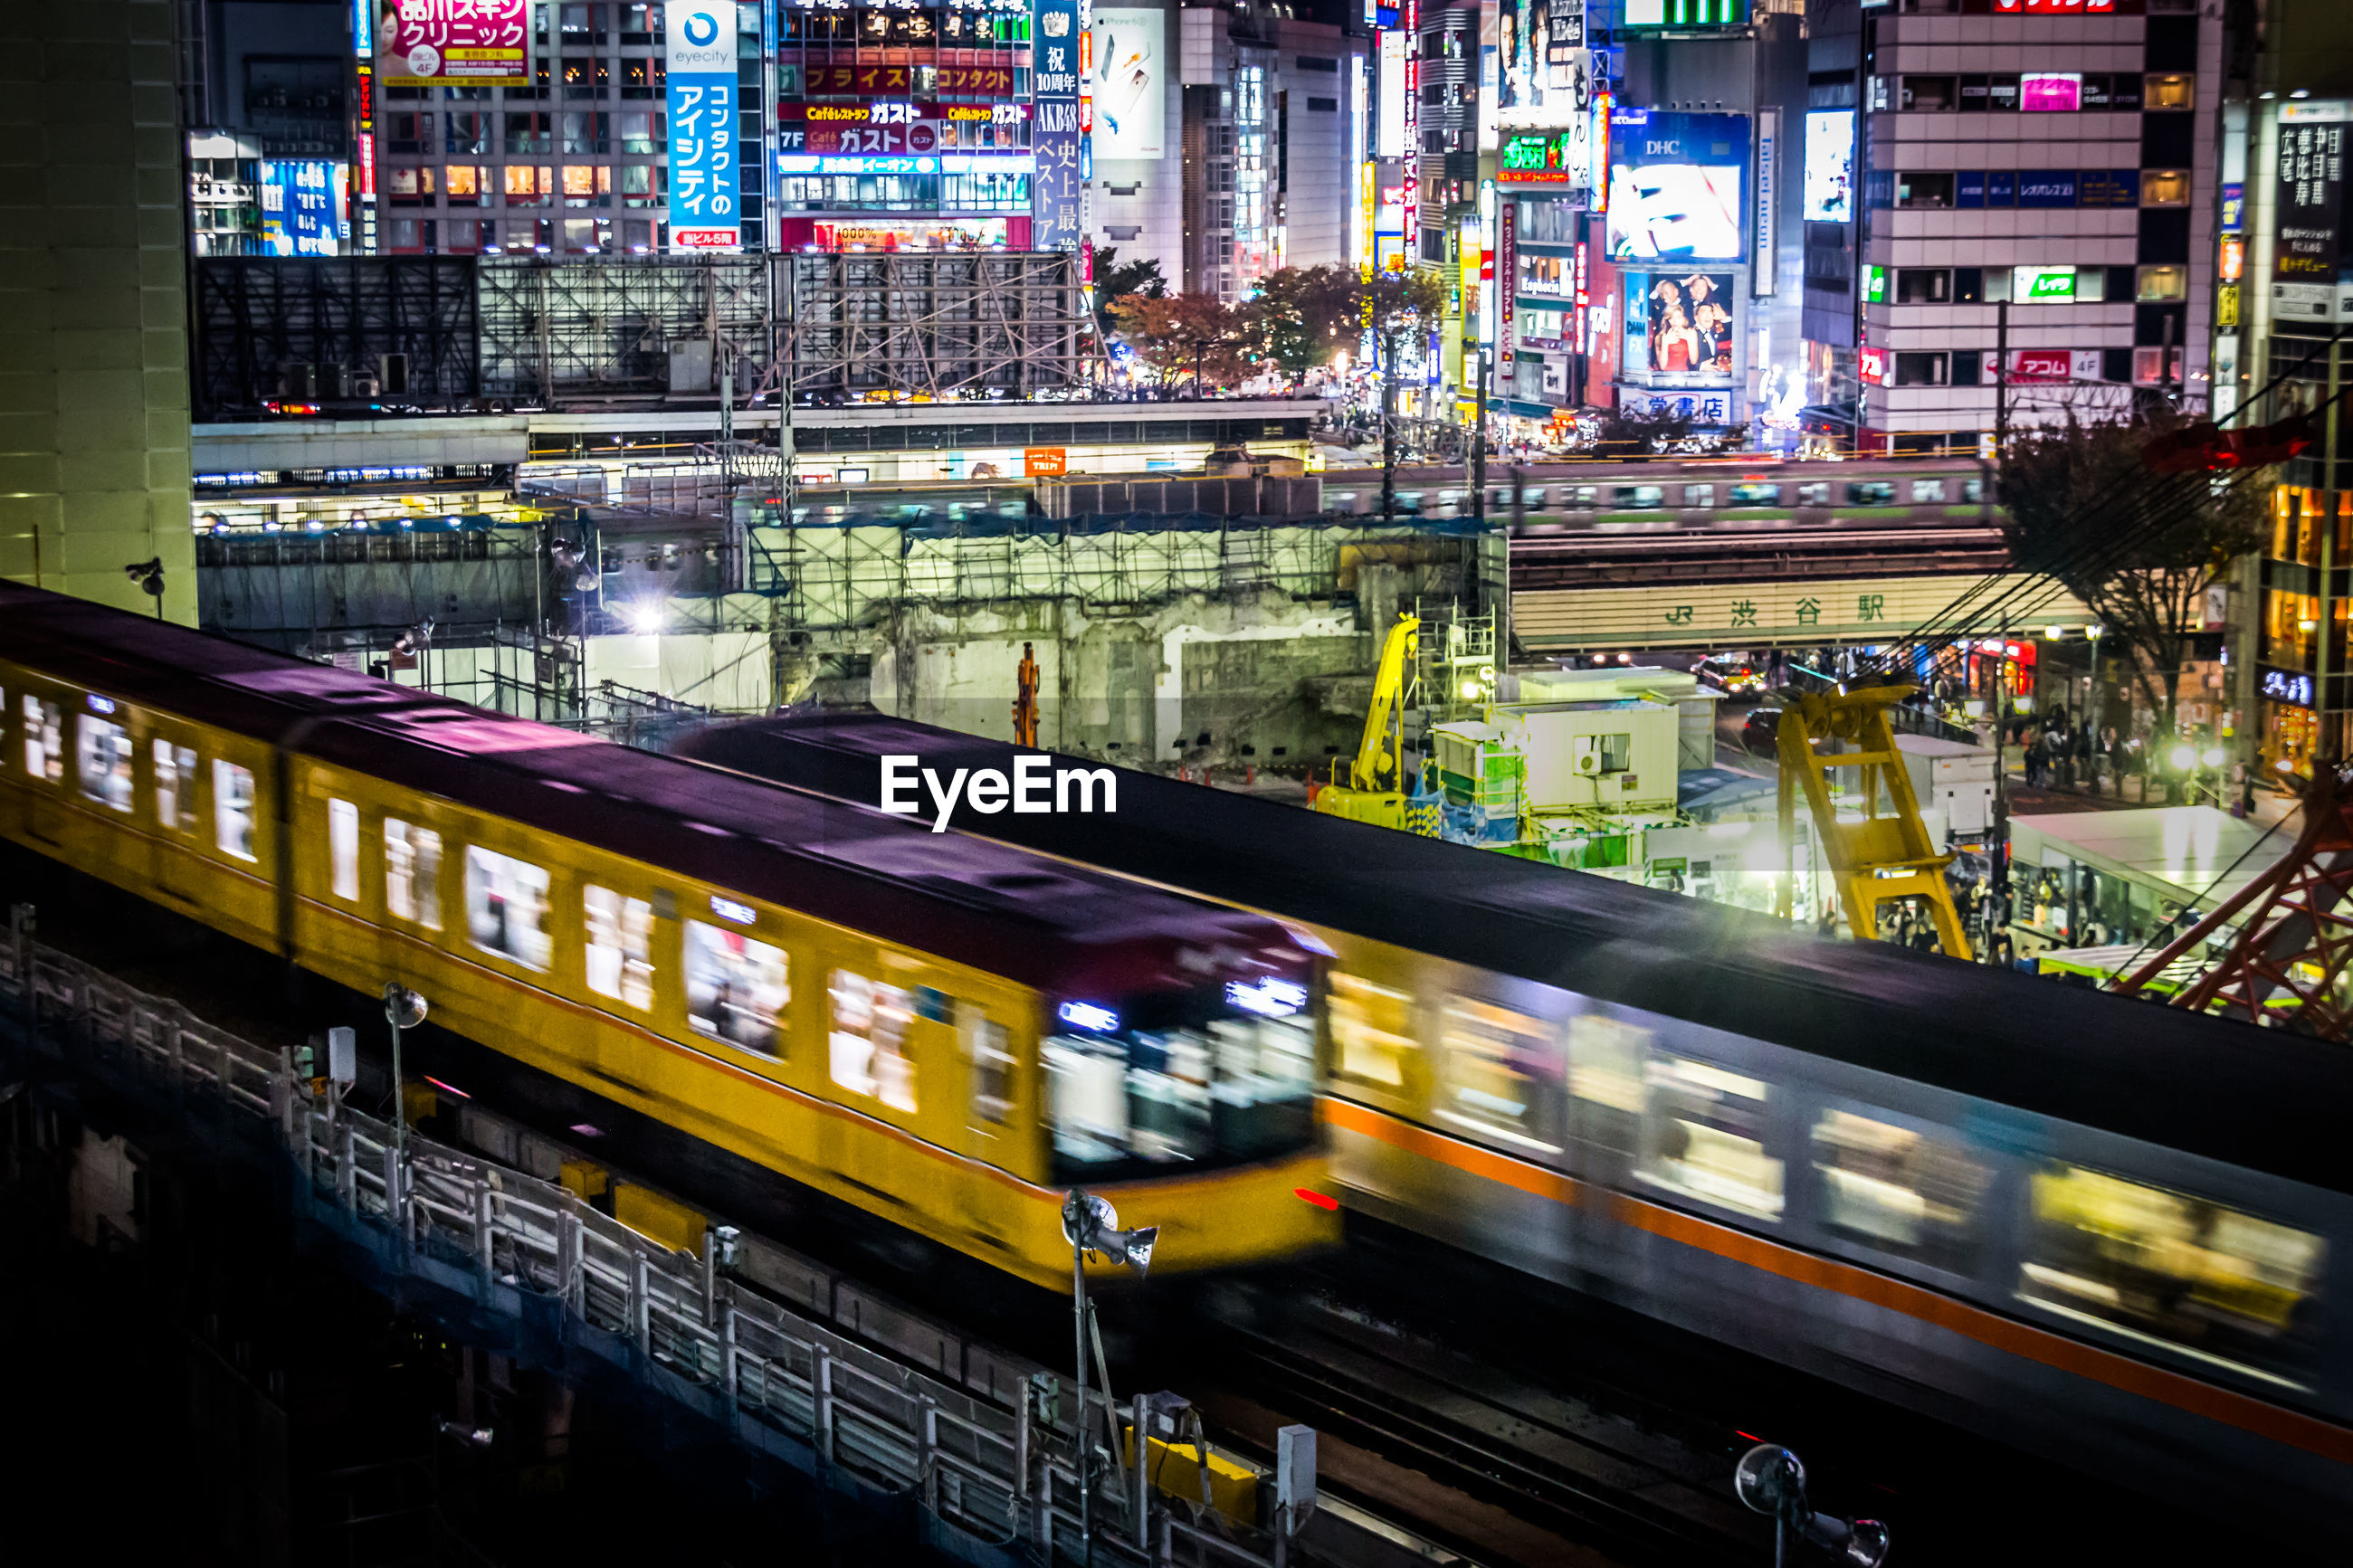 Blur image of illuminated trains against buildings at night